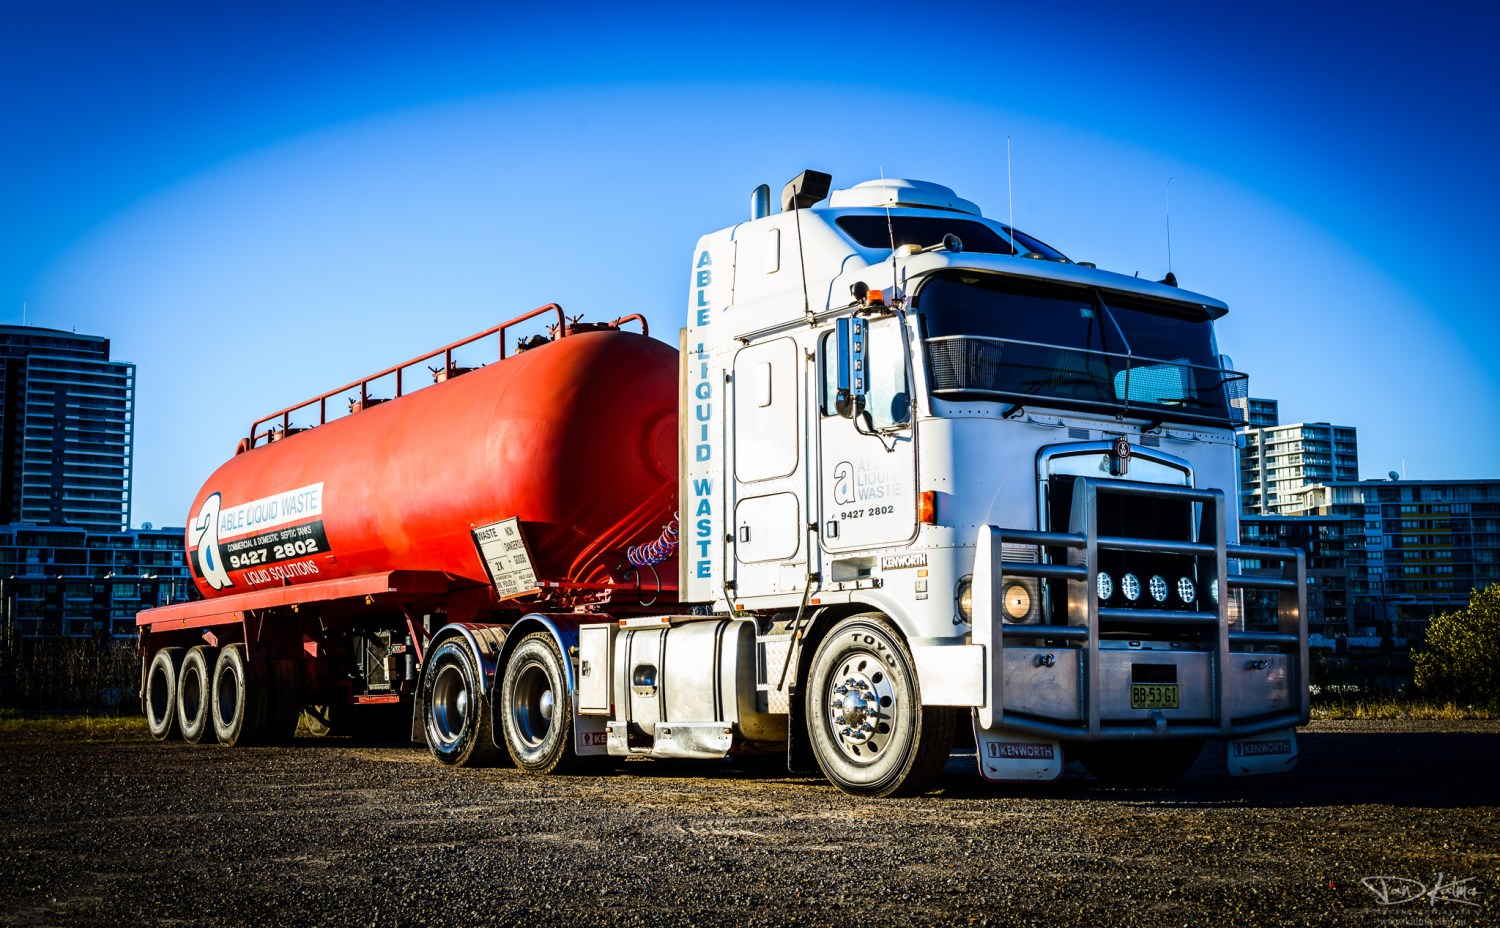 able liquid waste new south wales australia dan kalma photography truck